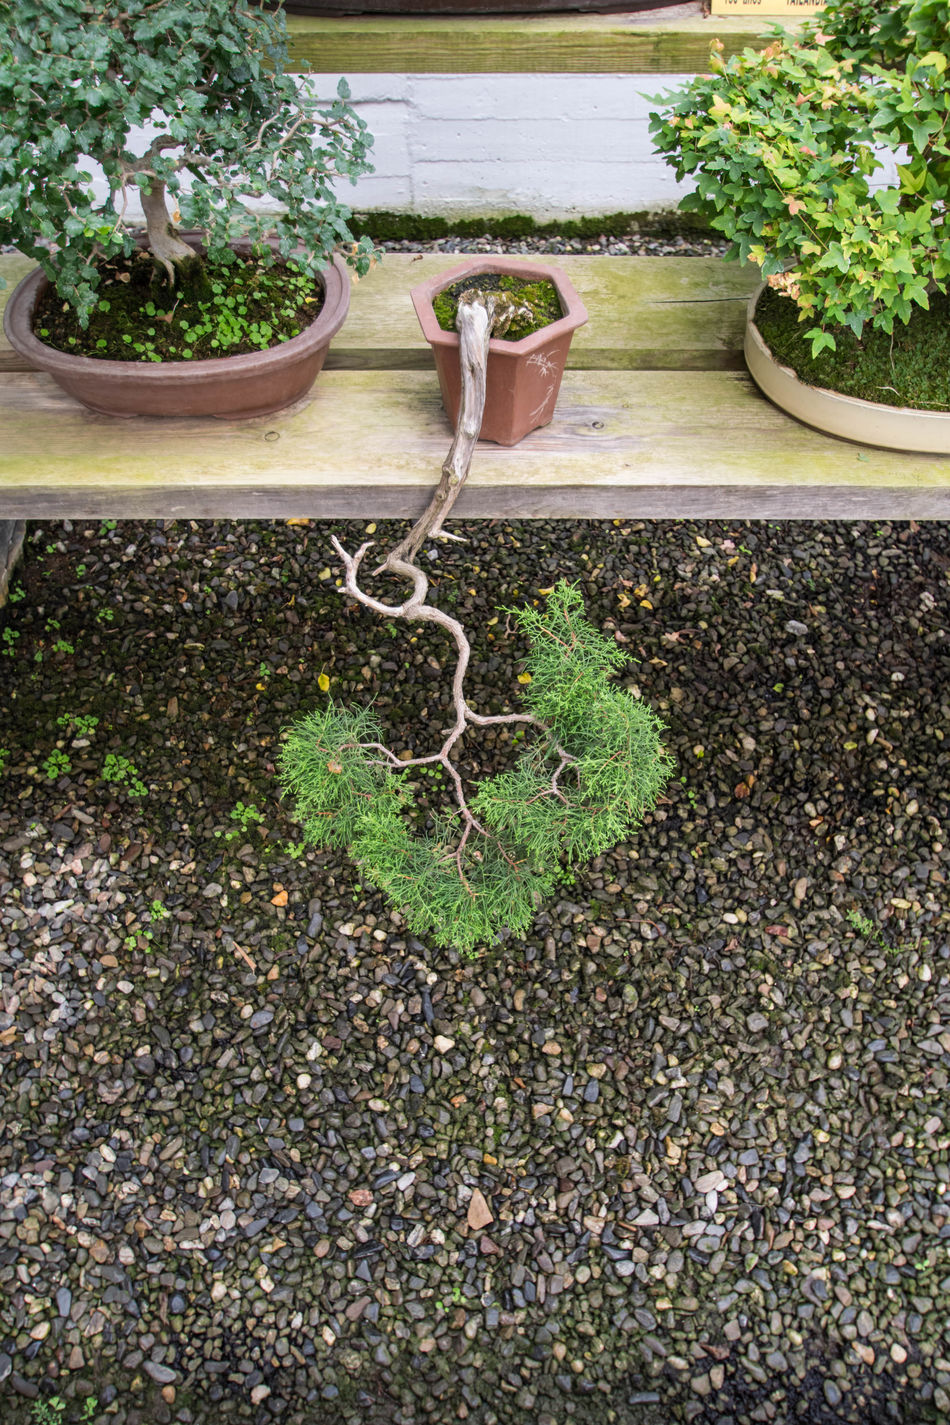 Adventure Beauty In Nature Bonsai Bonsai Tree Day Detail EyeEm Gallery EyeEm Nature Lover Growth Minature Nature Nature Nature_collection No People Old Outdoors Plant Plants Potted Plant Small Tree Tree Tree Tree Trunk Trees Upside Down